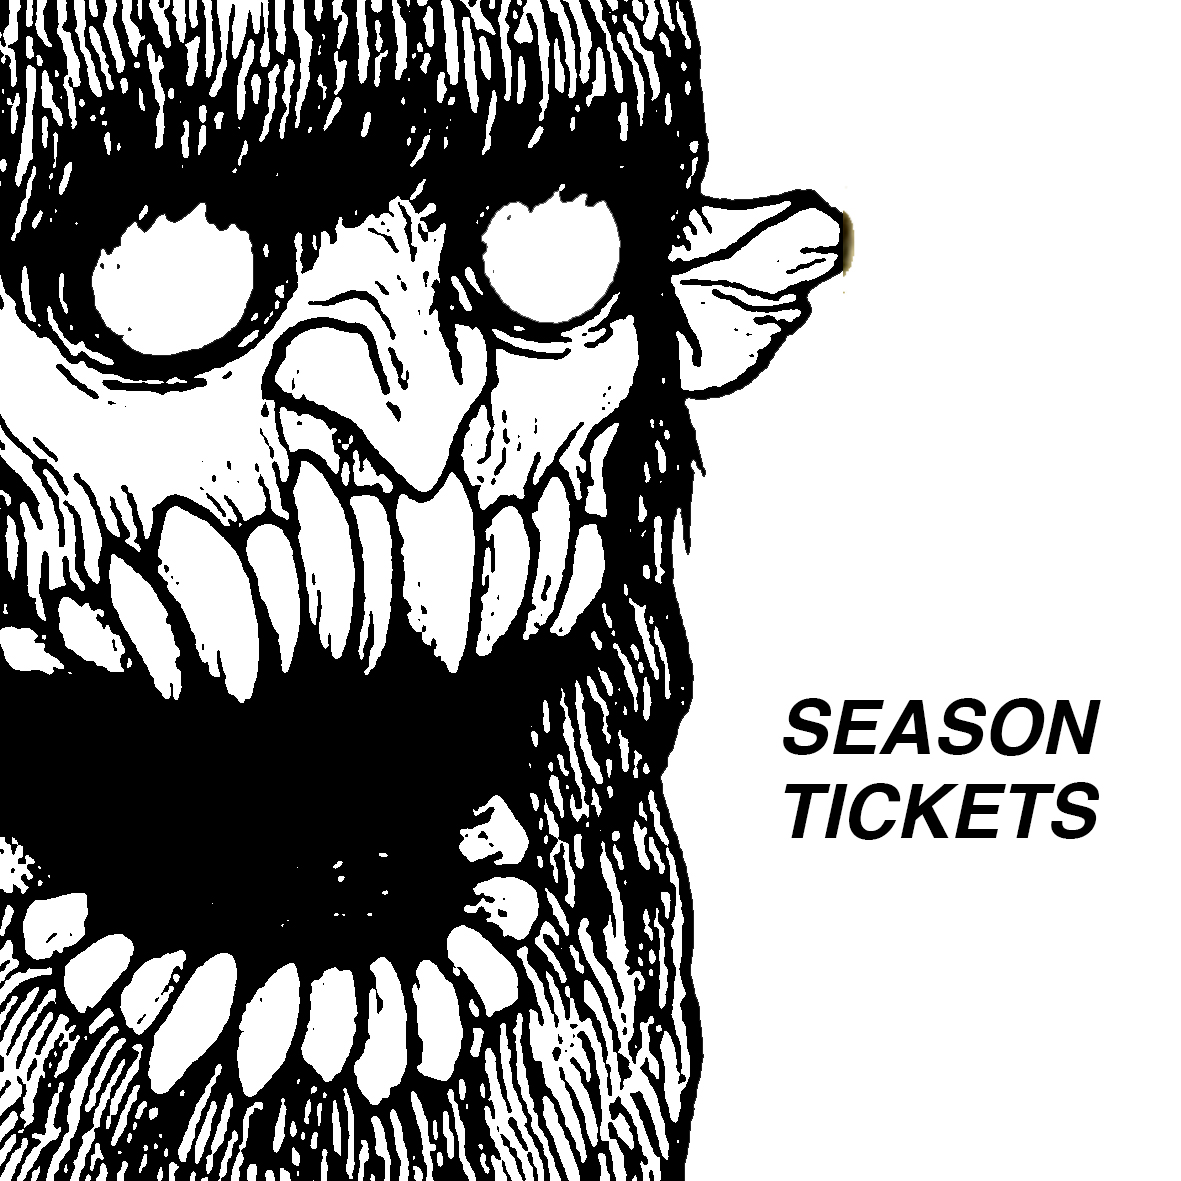 Season Ticket Holder